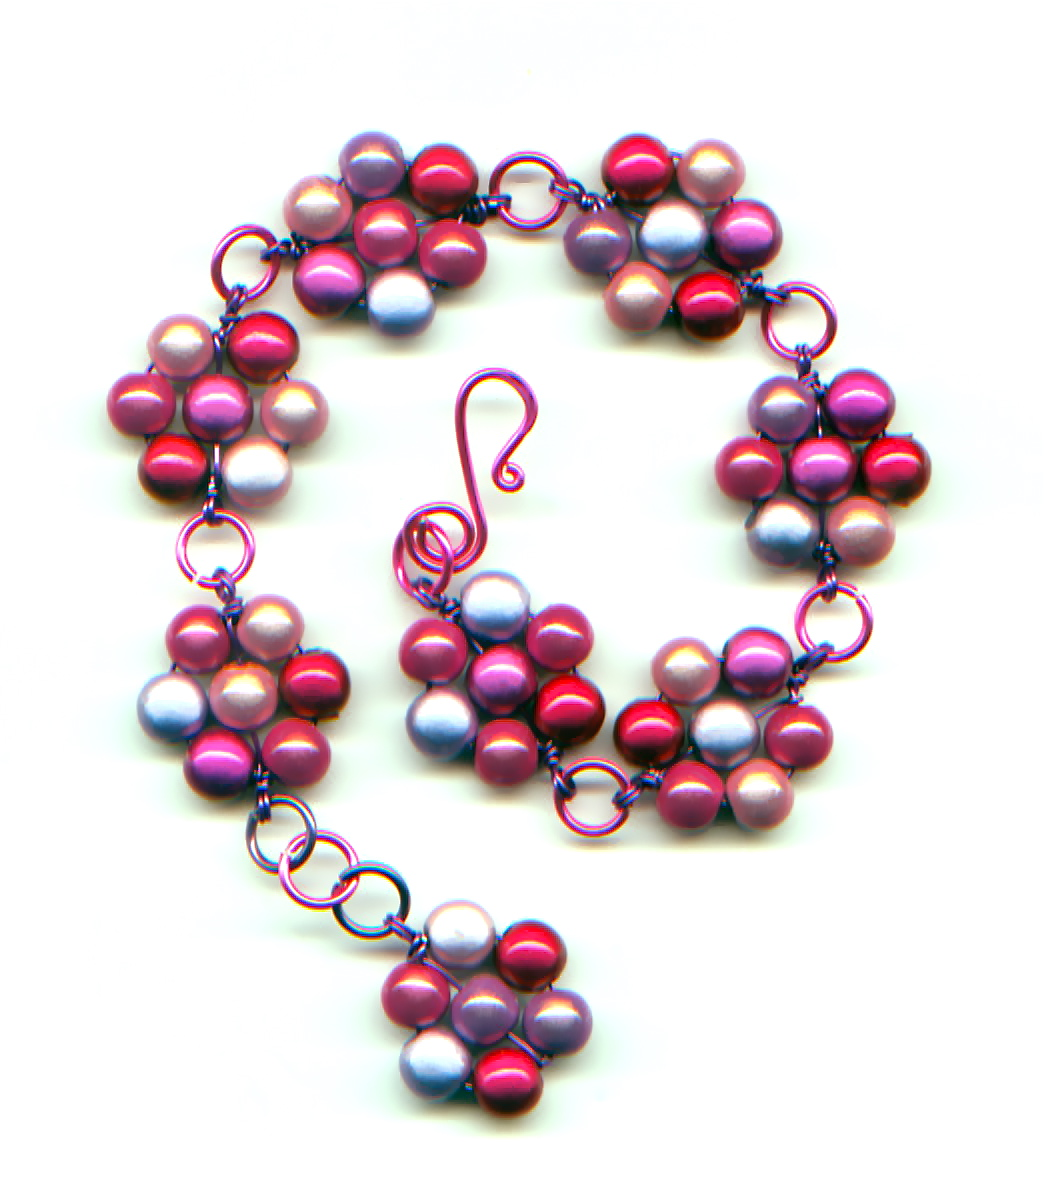 Wire Wrapped Daisy Chain Jewelry Tutorial ~ The Beading Gem\'s Journal